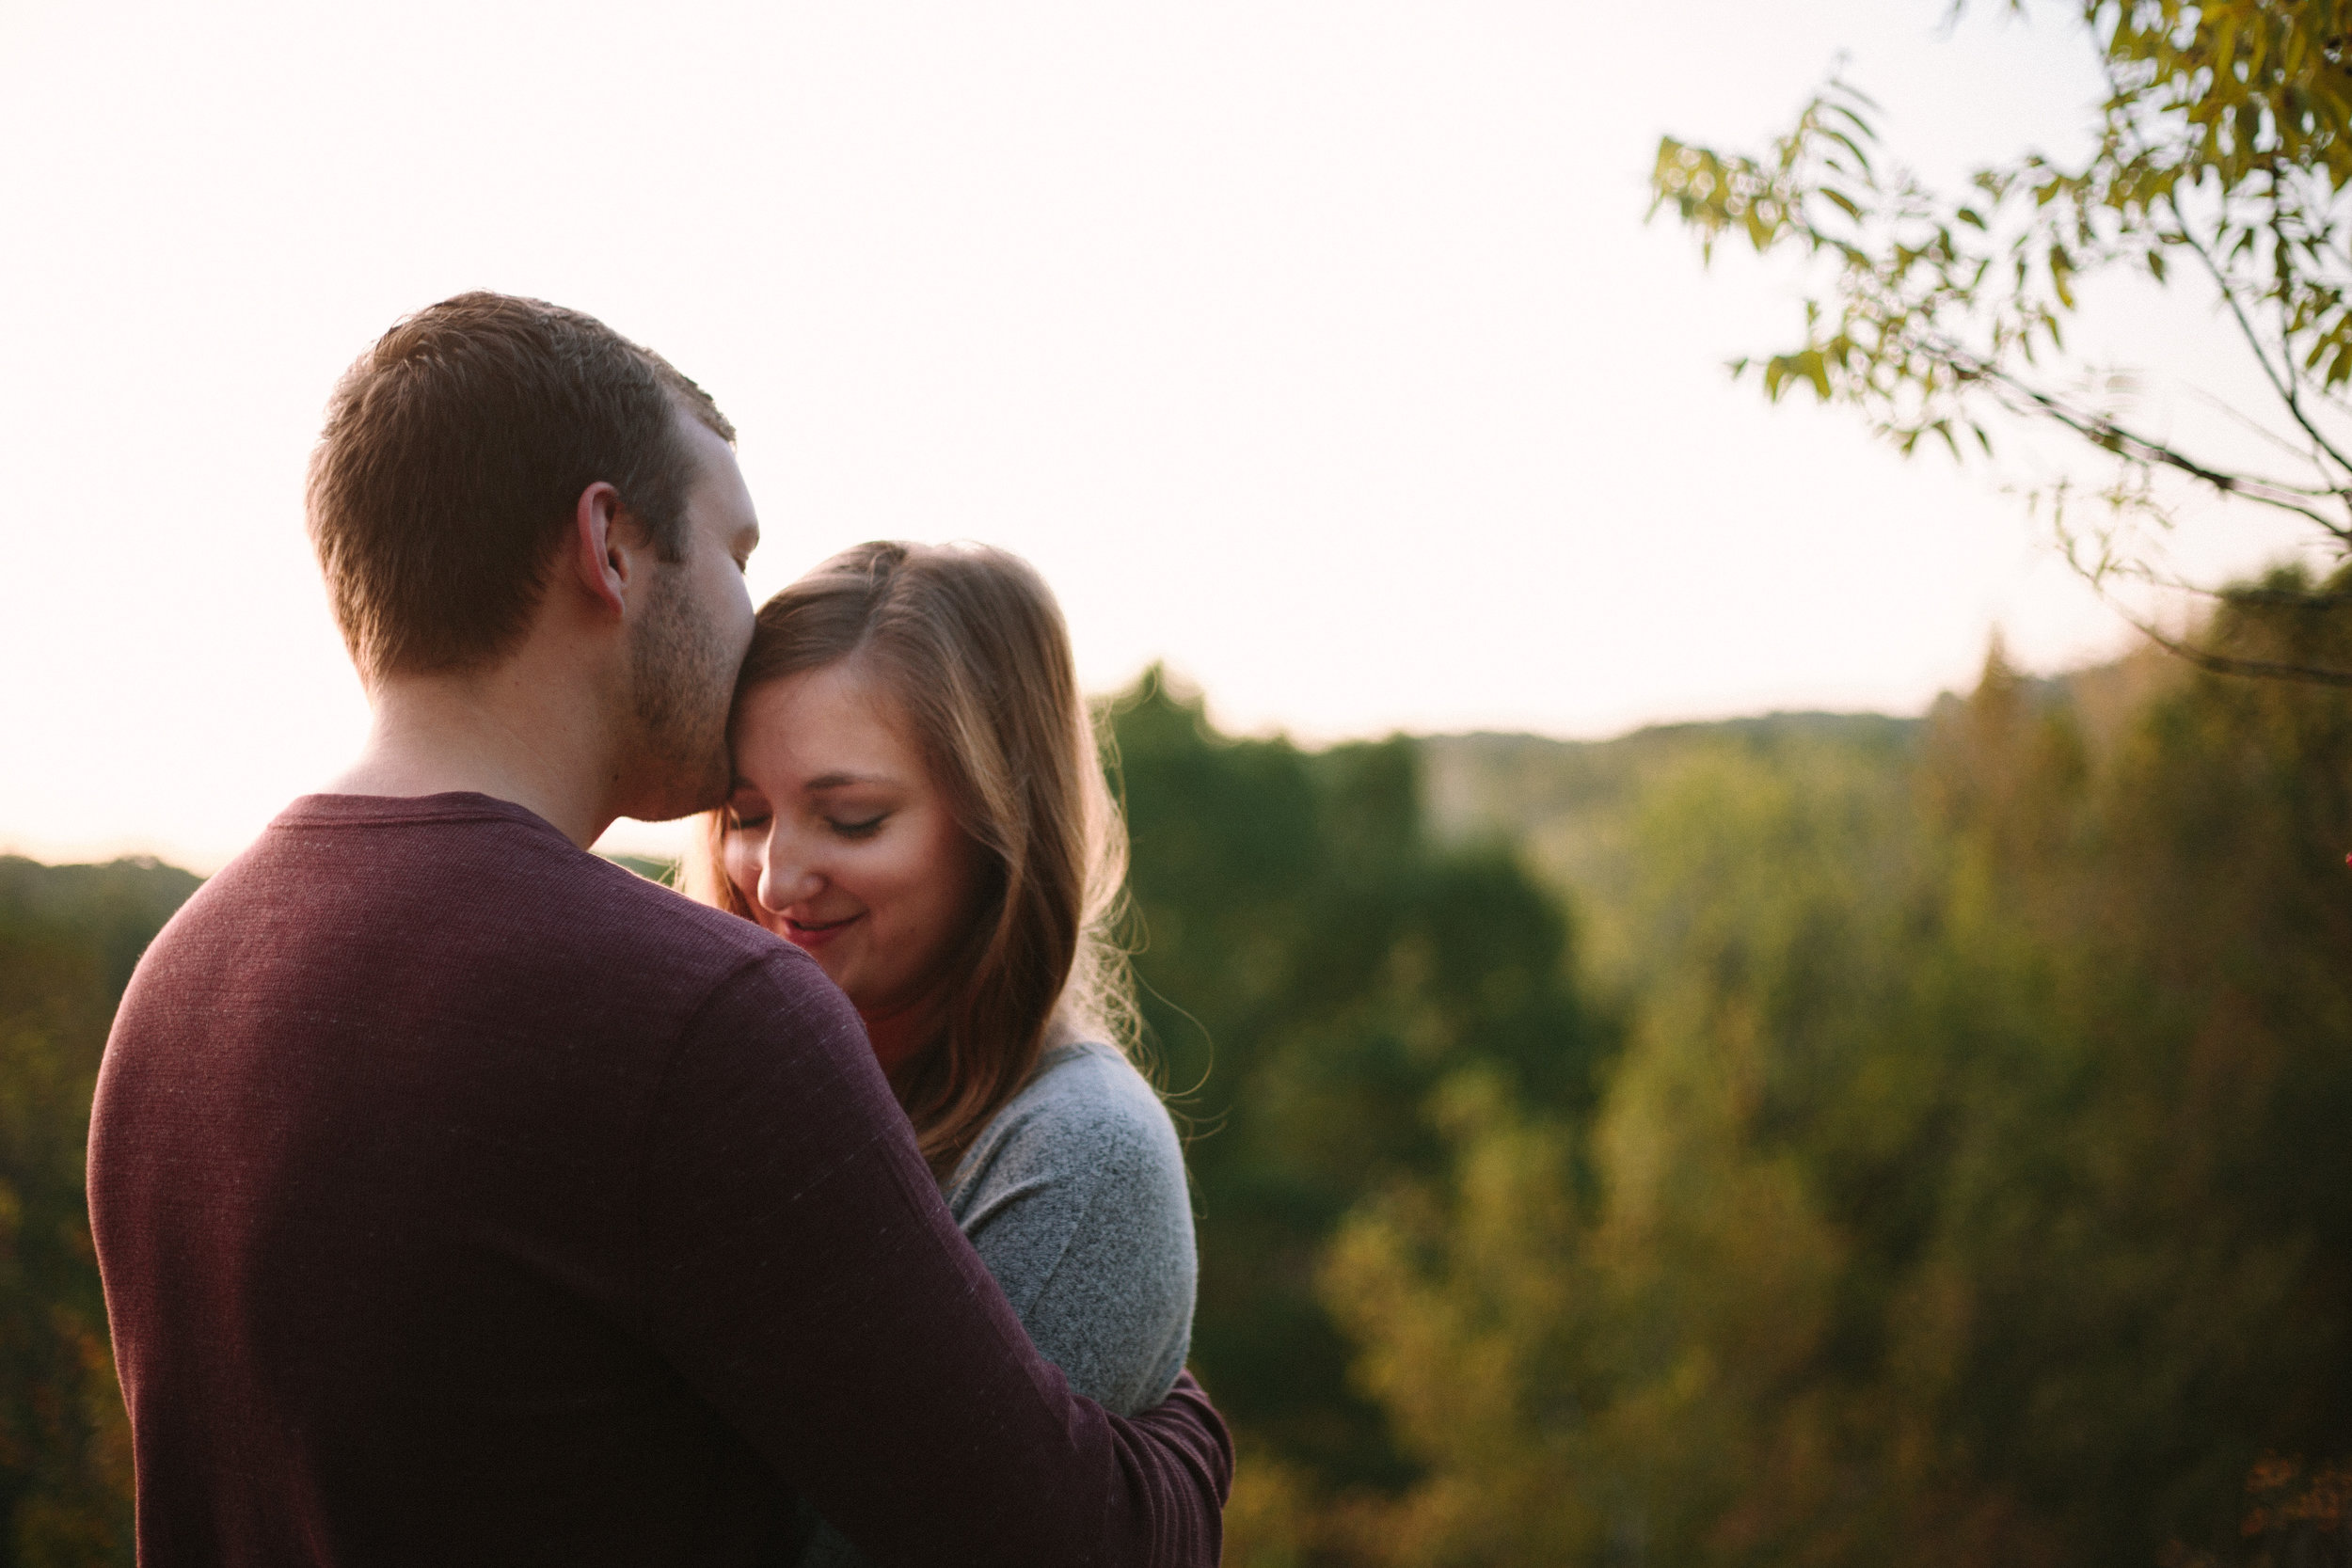 Adorable and Happy Sunrise Engagement session in Columbia, Missouri with Ashley Pieper Photography.St. Louis based traveling and destination wedding photographer for the genuine and creative couple in love.